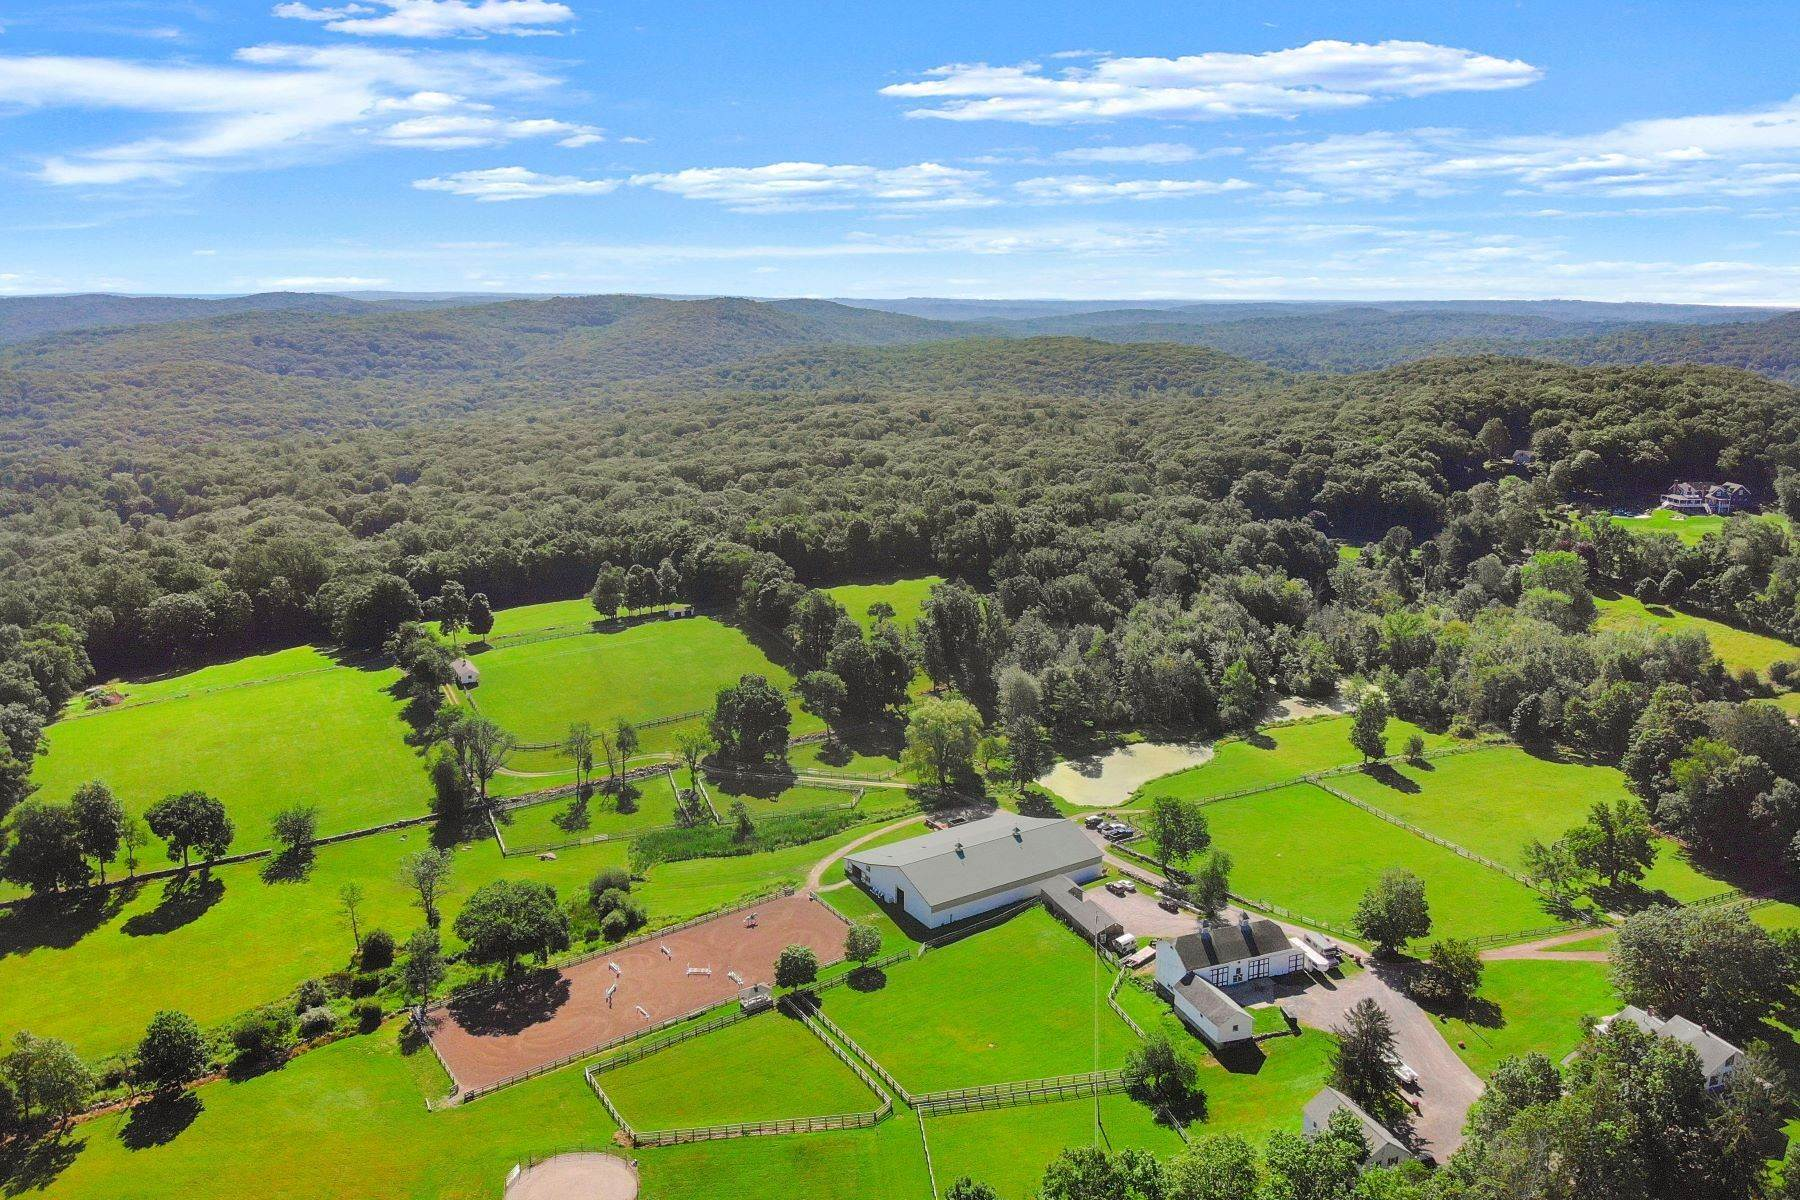 Vineyard Real Estate for Sale at Turnabout Farm - Equestrian 484 Ridgebury Road & 33 Ned'S Mountain Road Ridgefield, Connecticut 06877 United States